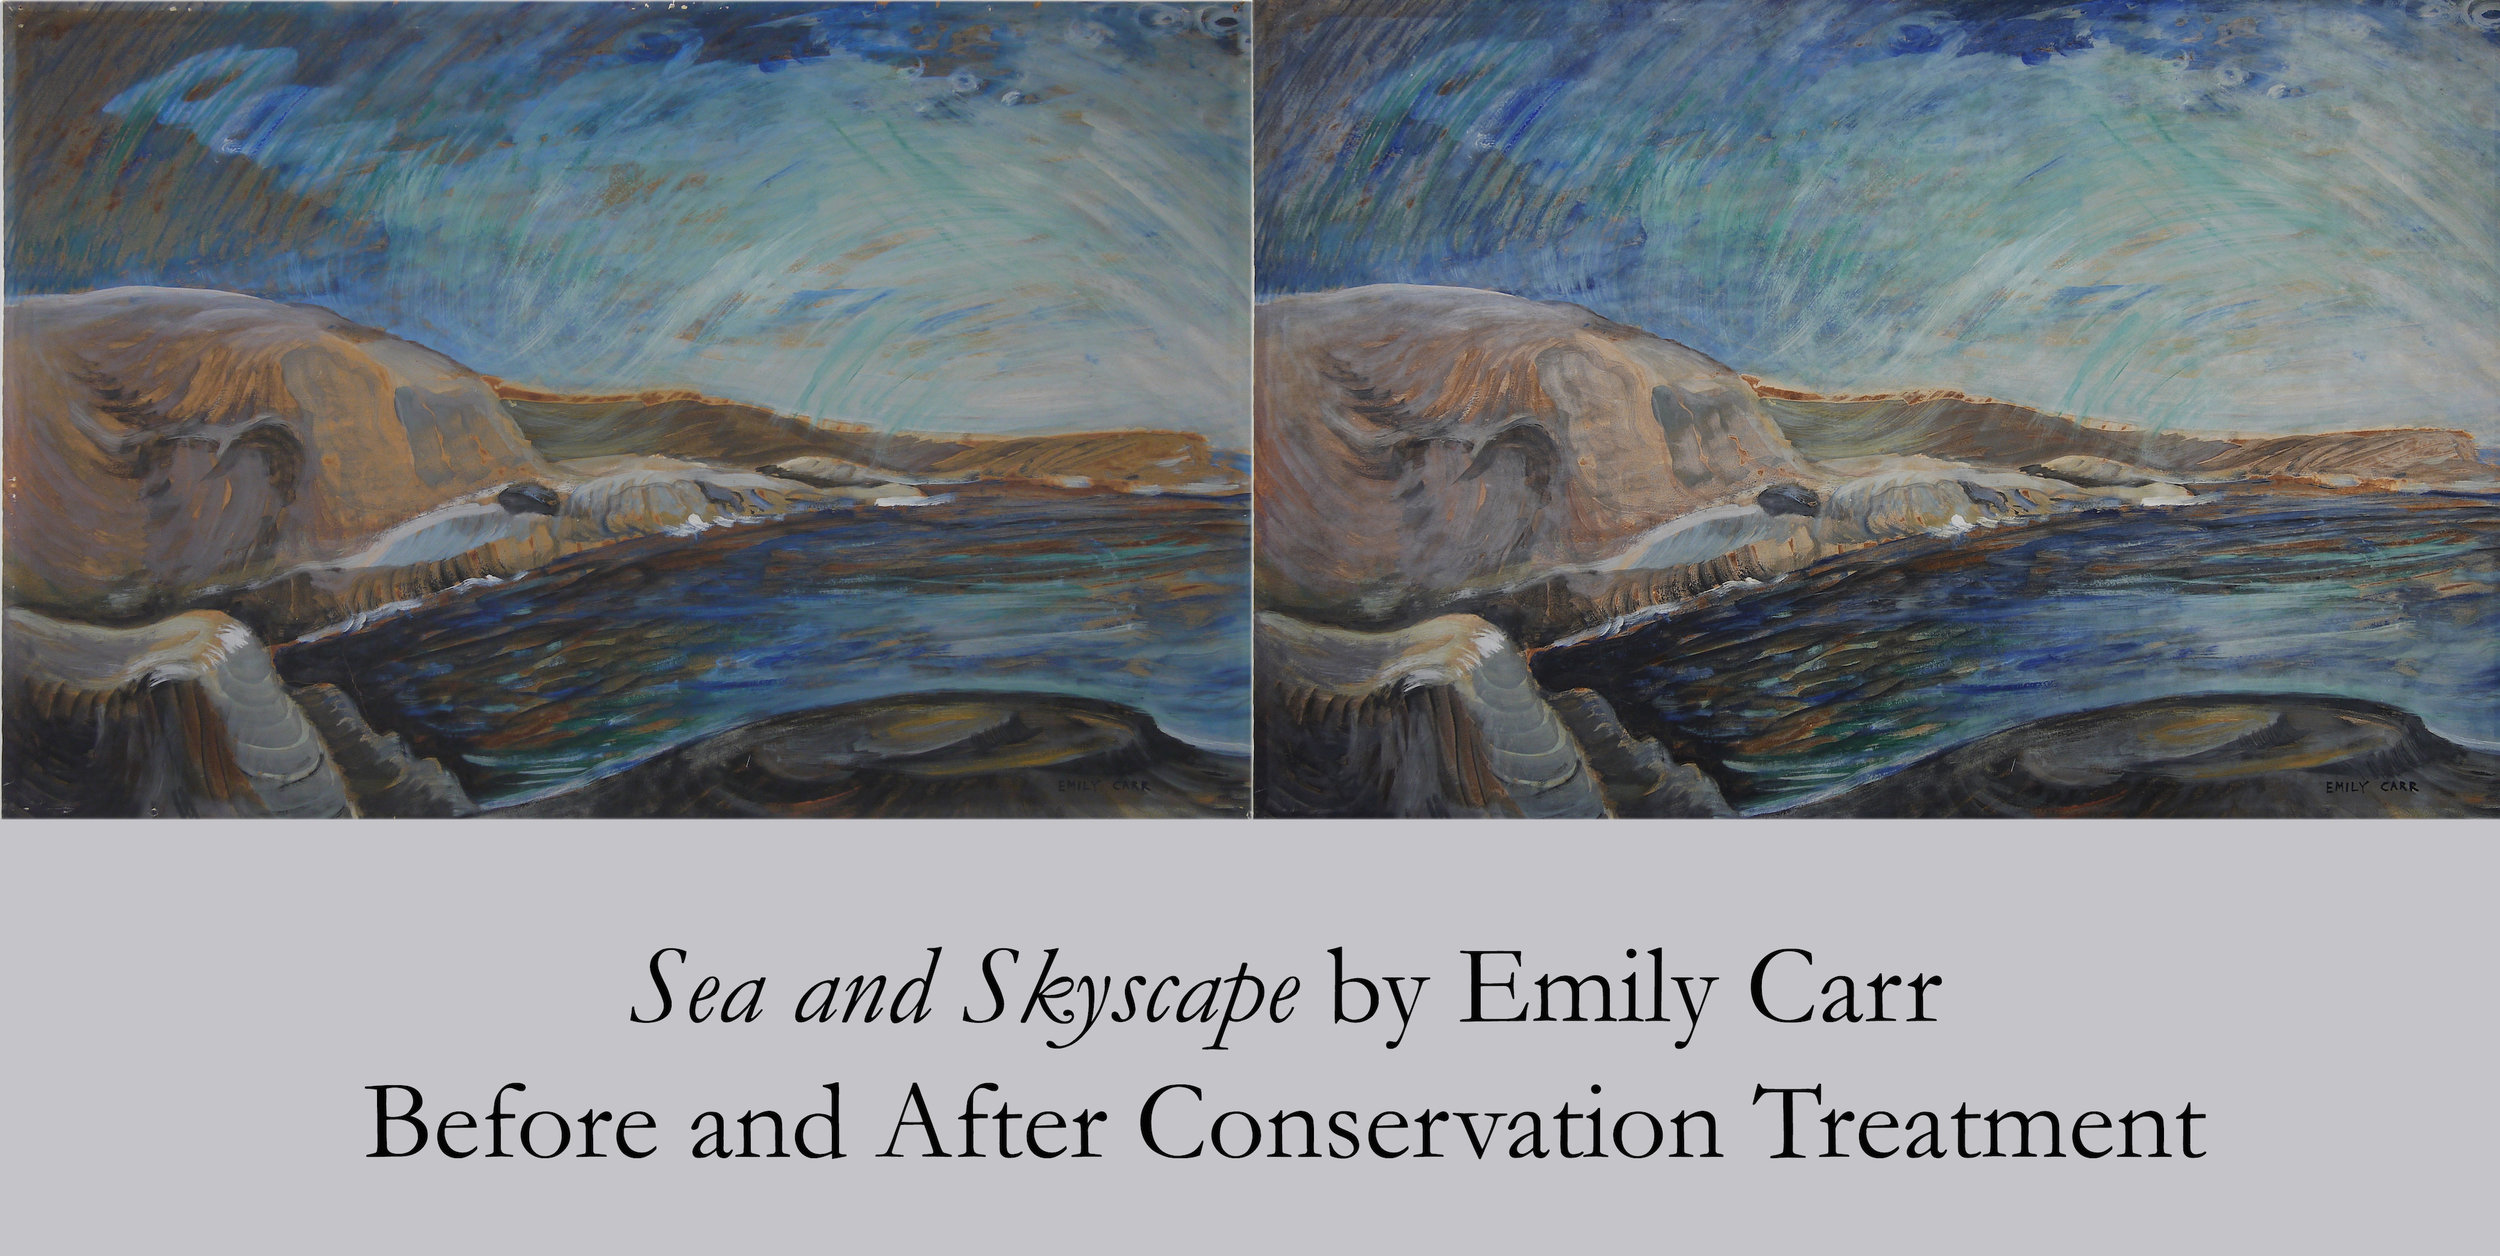 Sea and Skyscape by Emily Carr - Before and After Conservaton